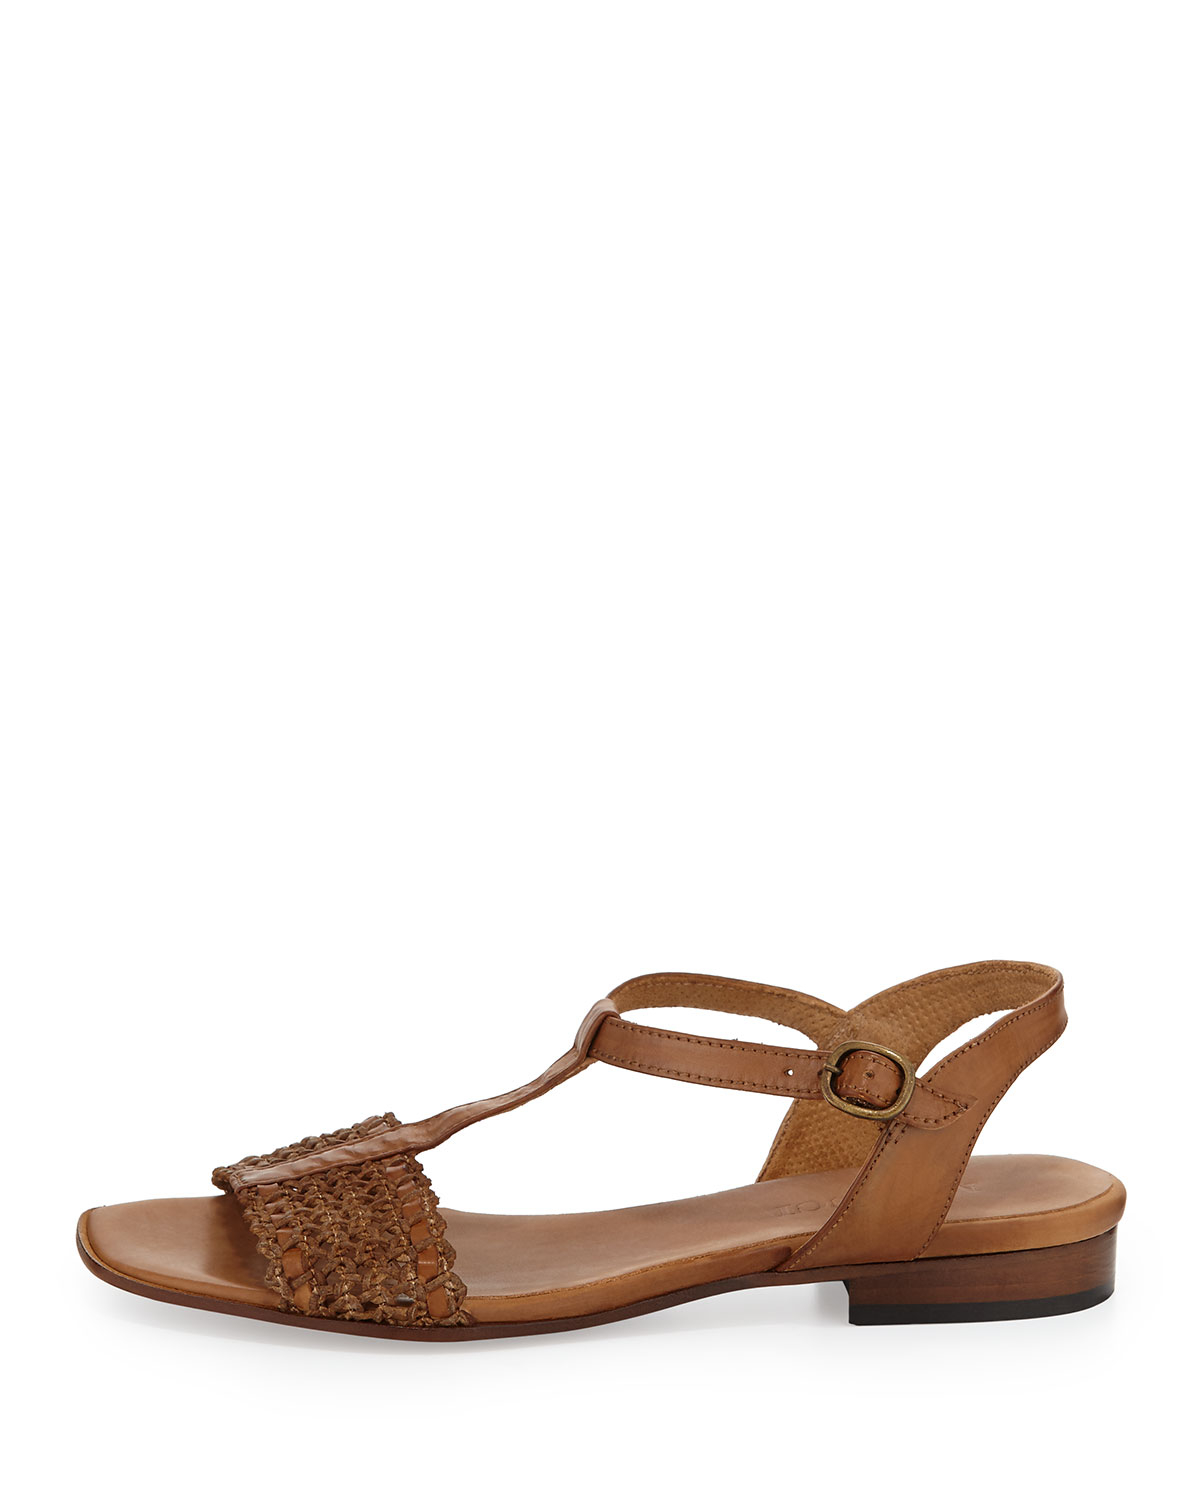 Camel Brown Leather Shoes